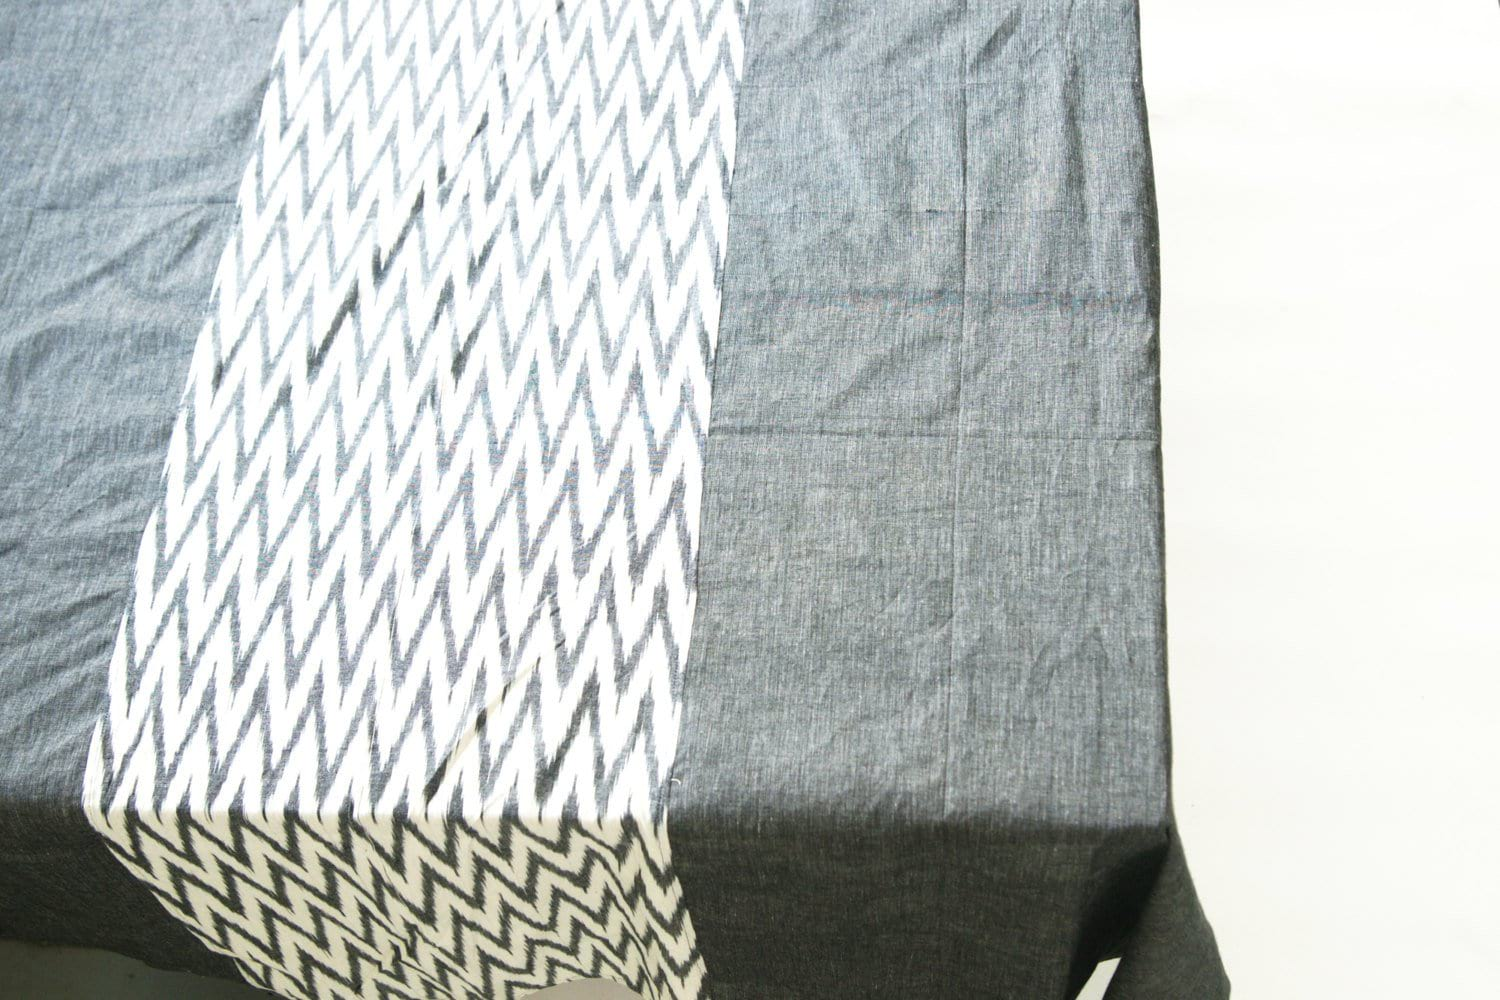 Rustic Loom Gray Chevron Zig Zag Cotton Tablecloth Handwoven Ikat Stripe